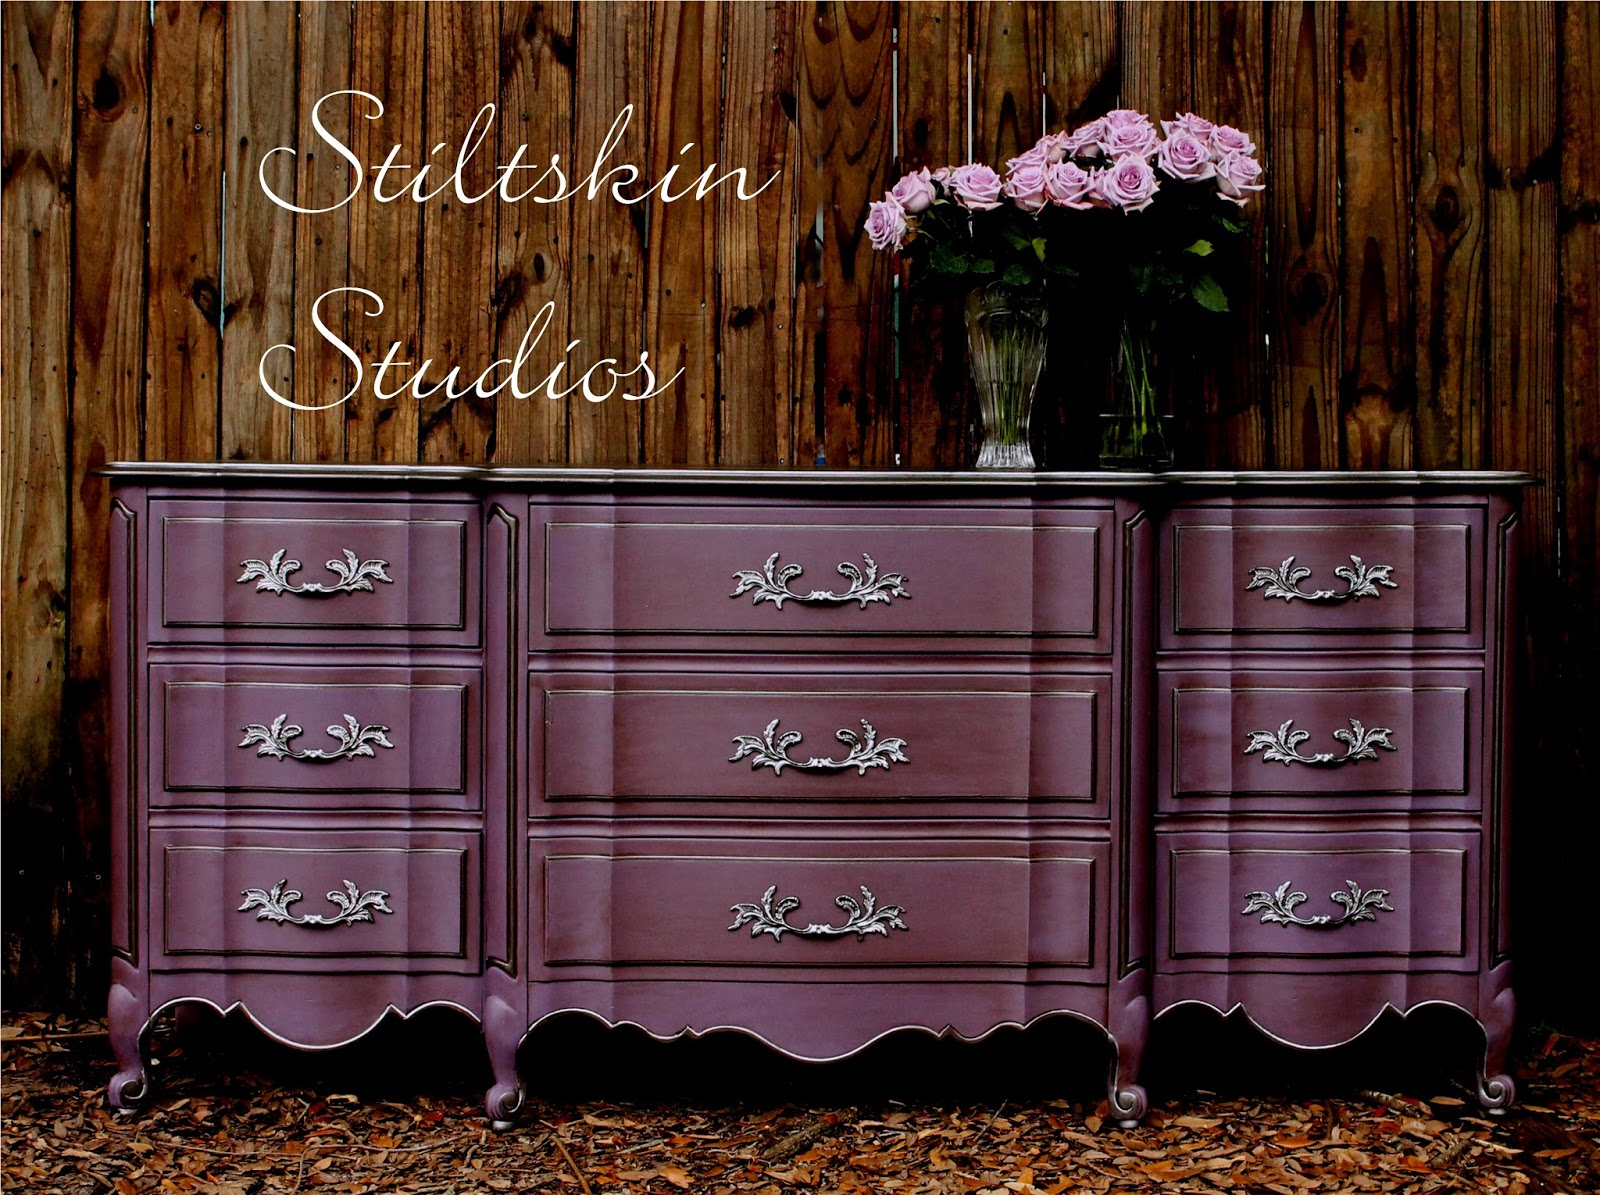 dark purple furniture. Stiltskin Studios: Lush. Dark Purple Furniture